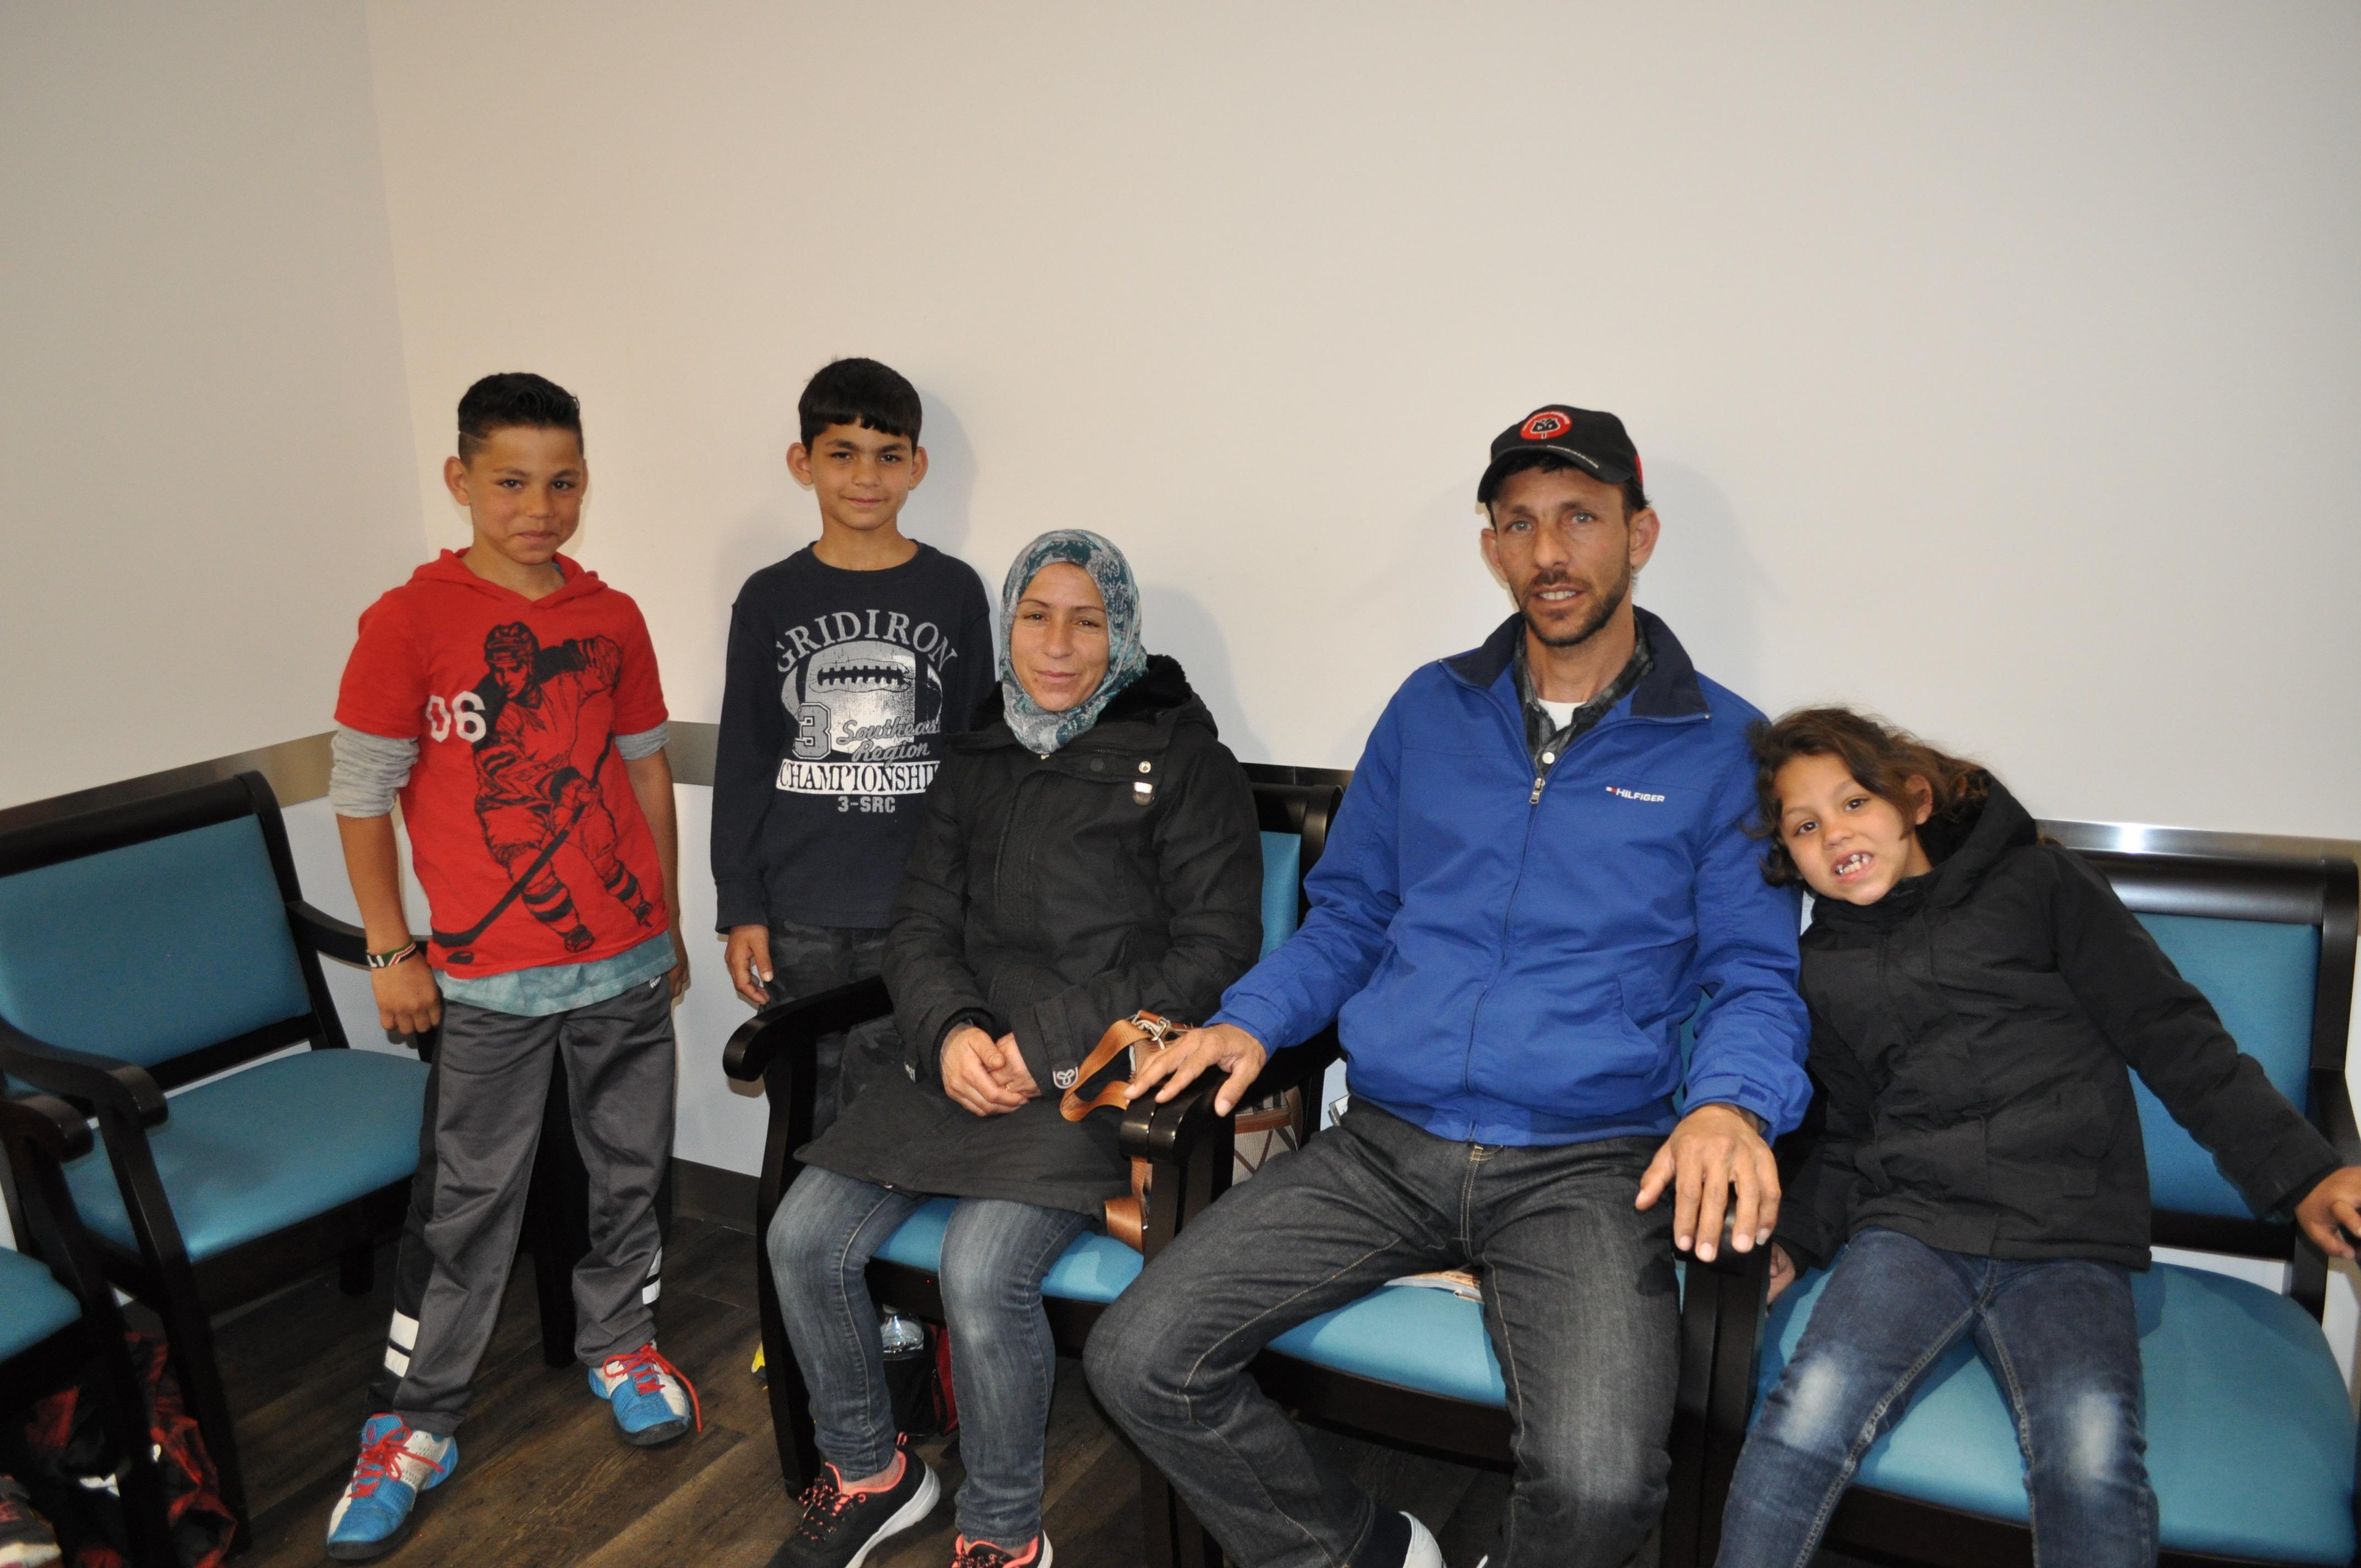 Members of the Malak family, Syrian immigrants who came to Canada in 2015 after three years in a refugee camp